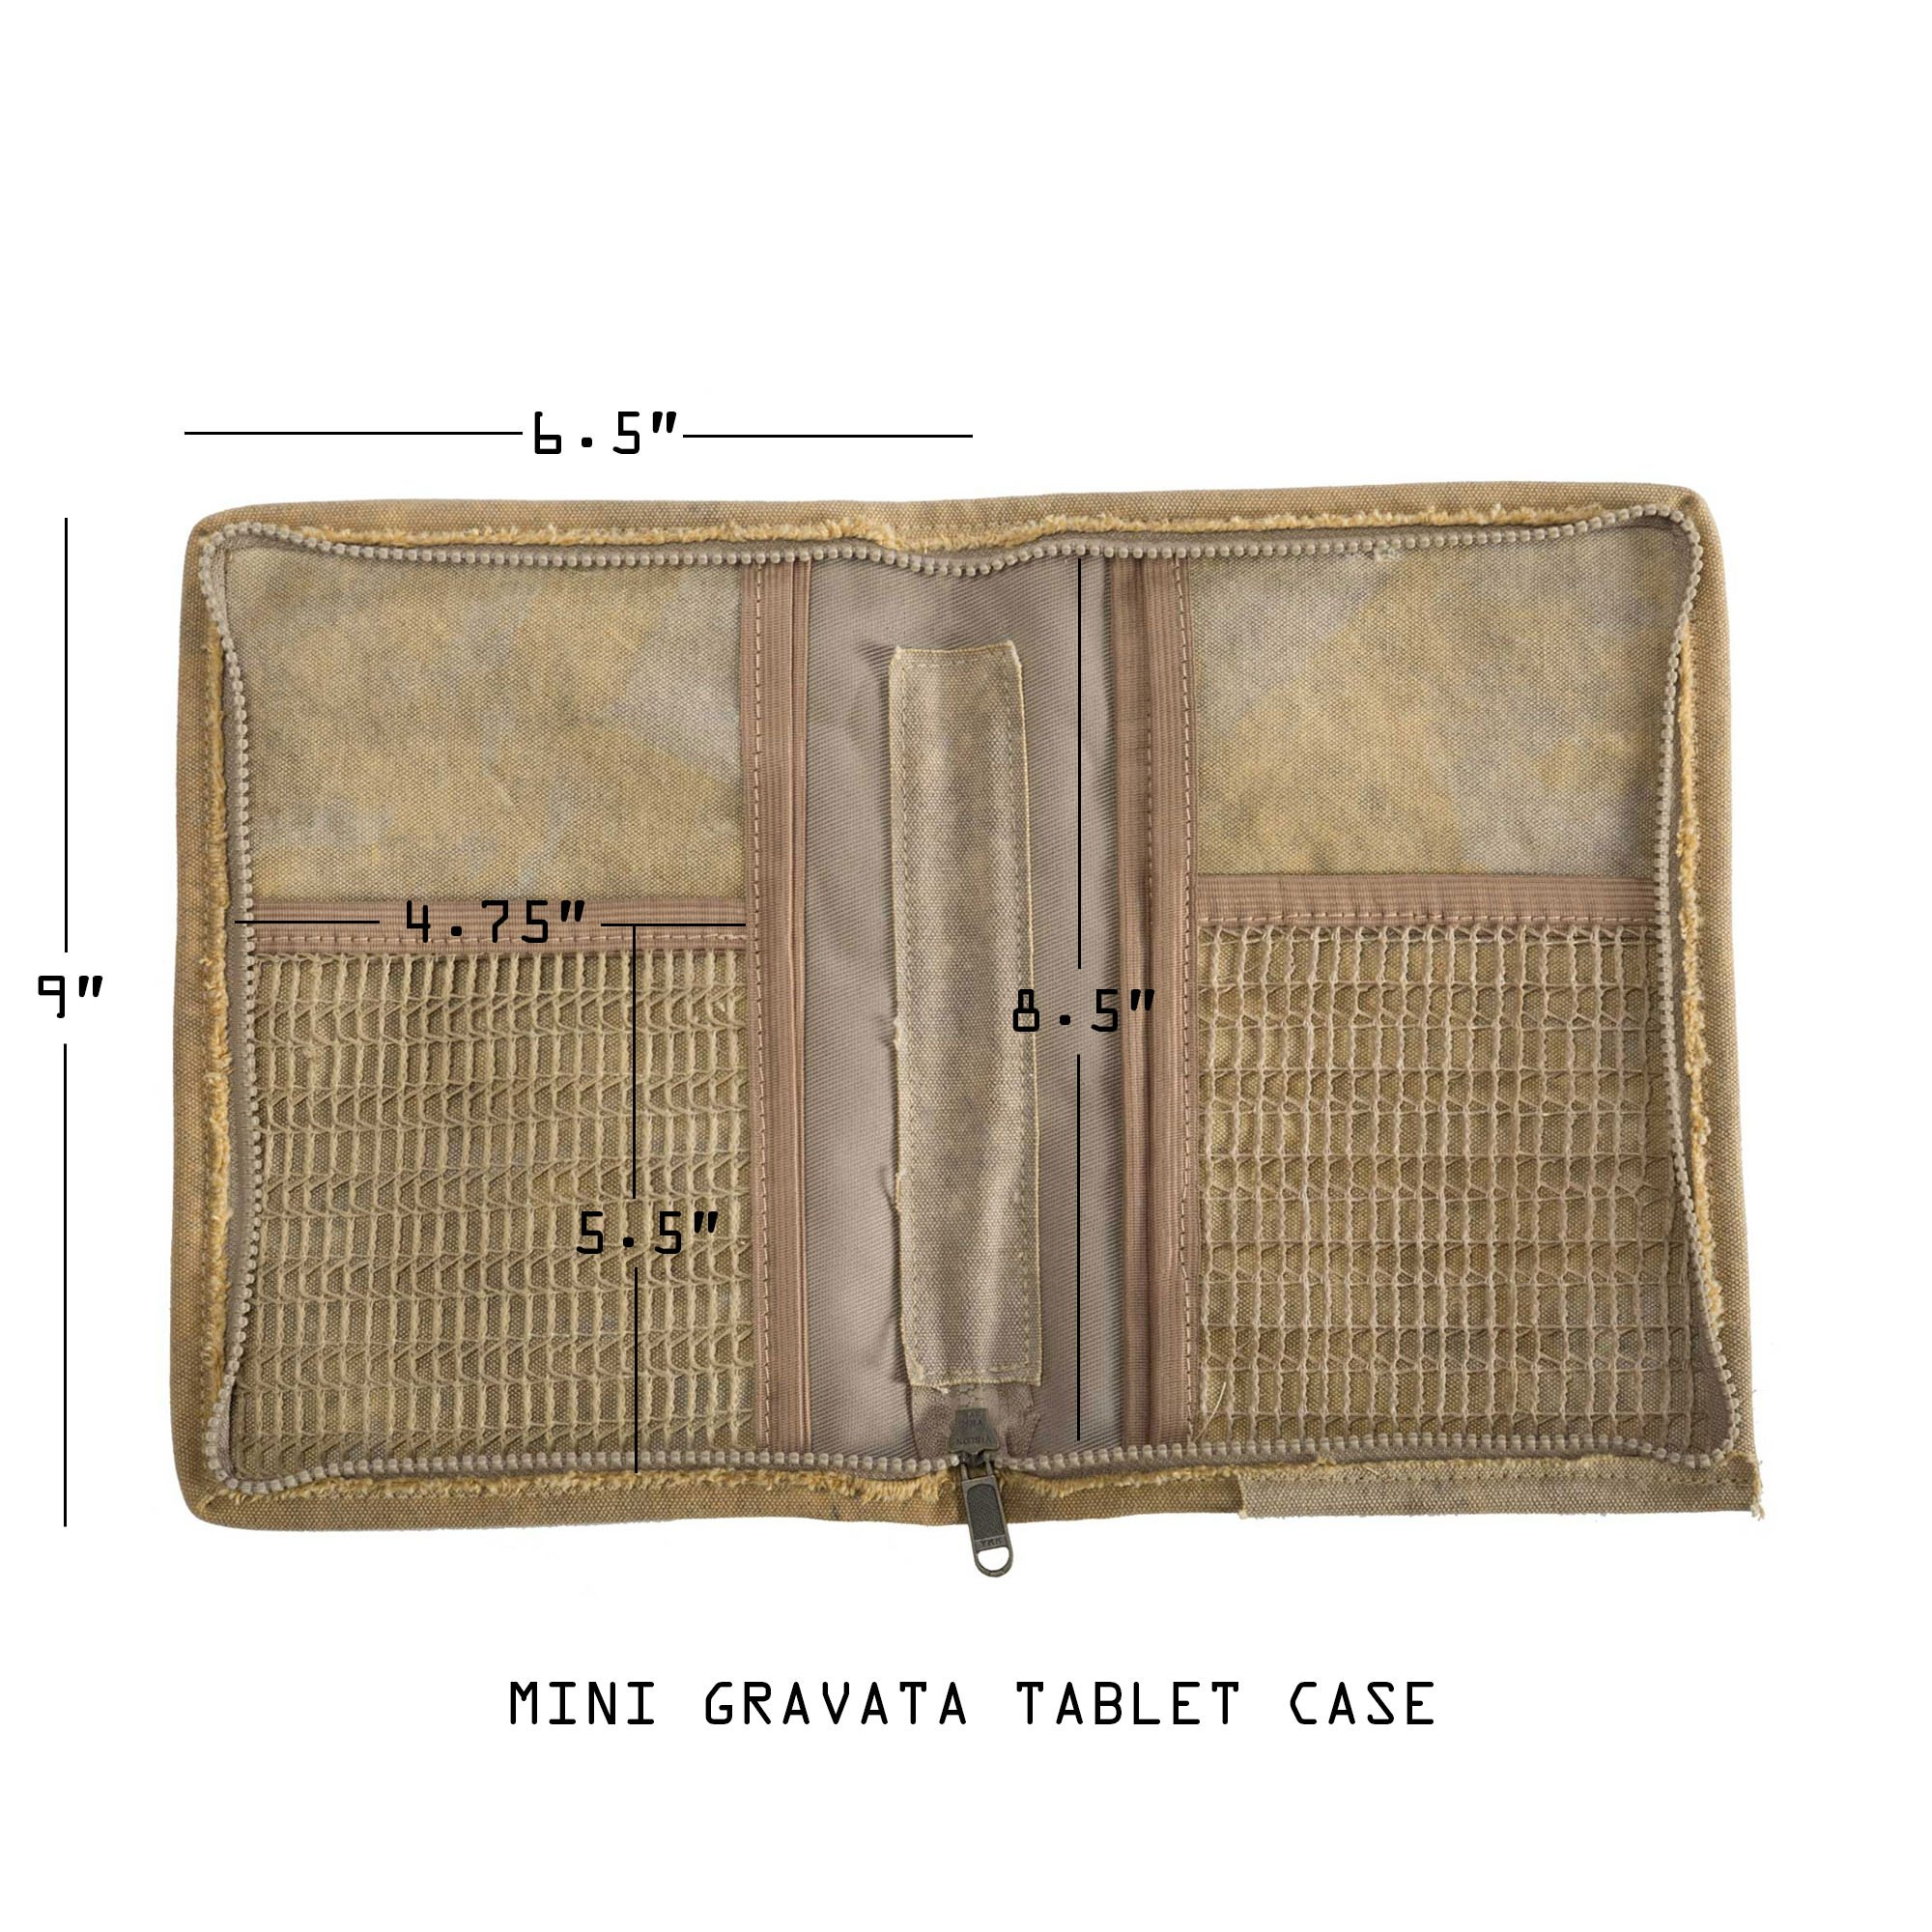 Gravata Tablet Case by The Real Deal: Made In Brazil